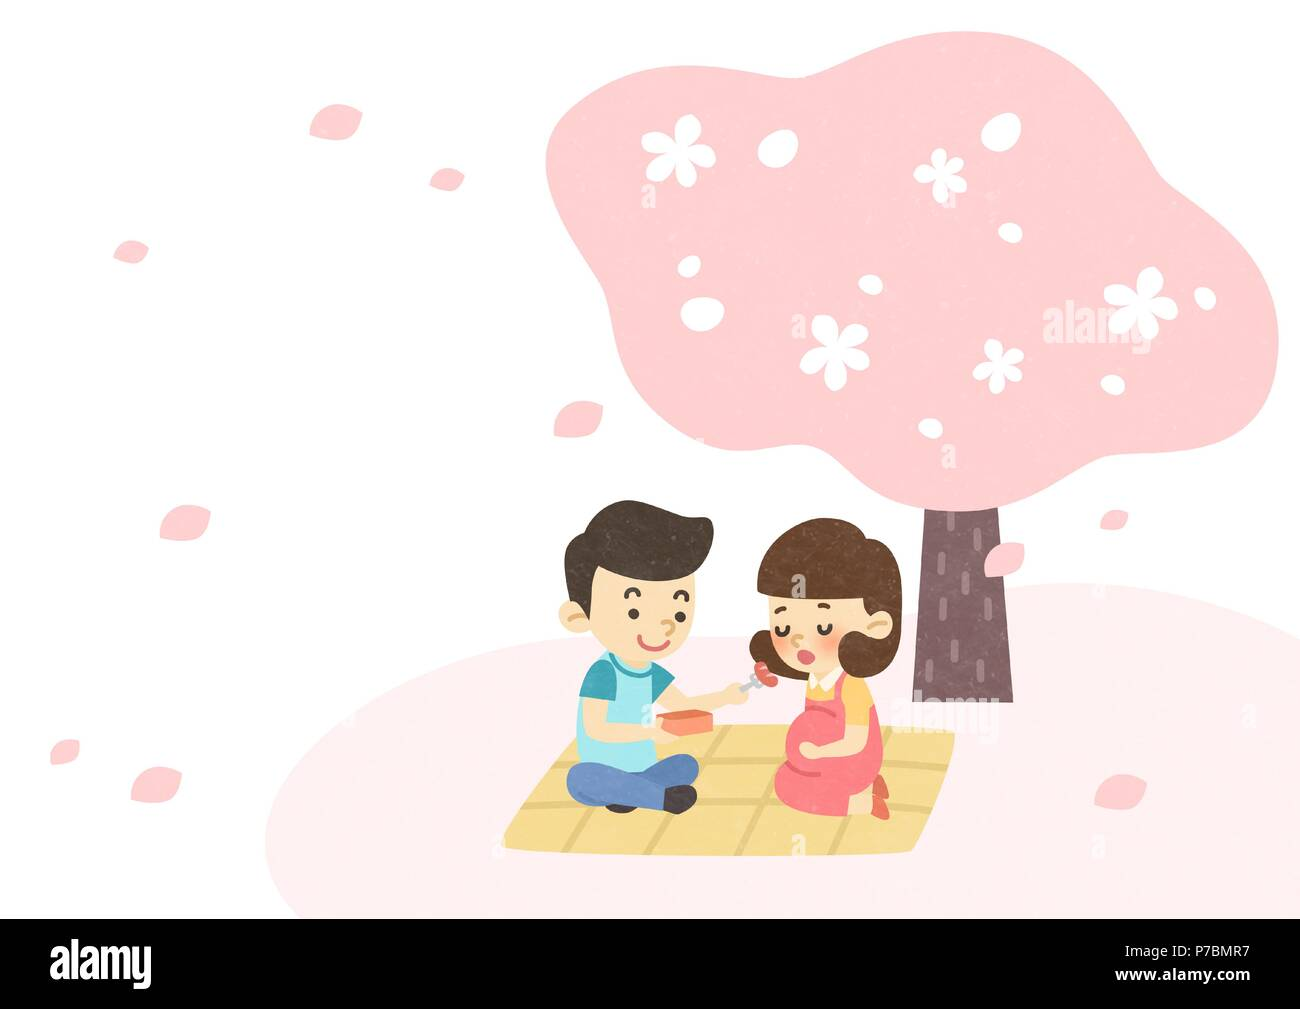 Vector - Enjoy spring season with happy family illustration 009 - Stock Vector